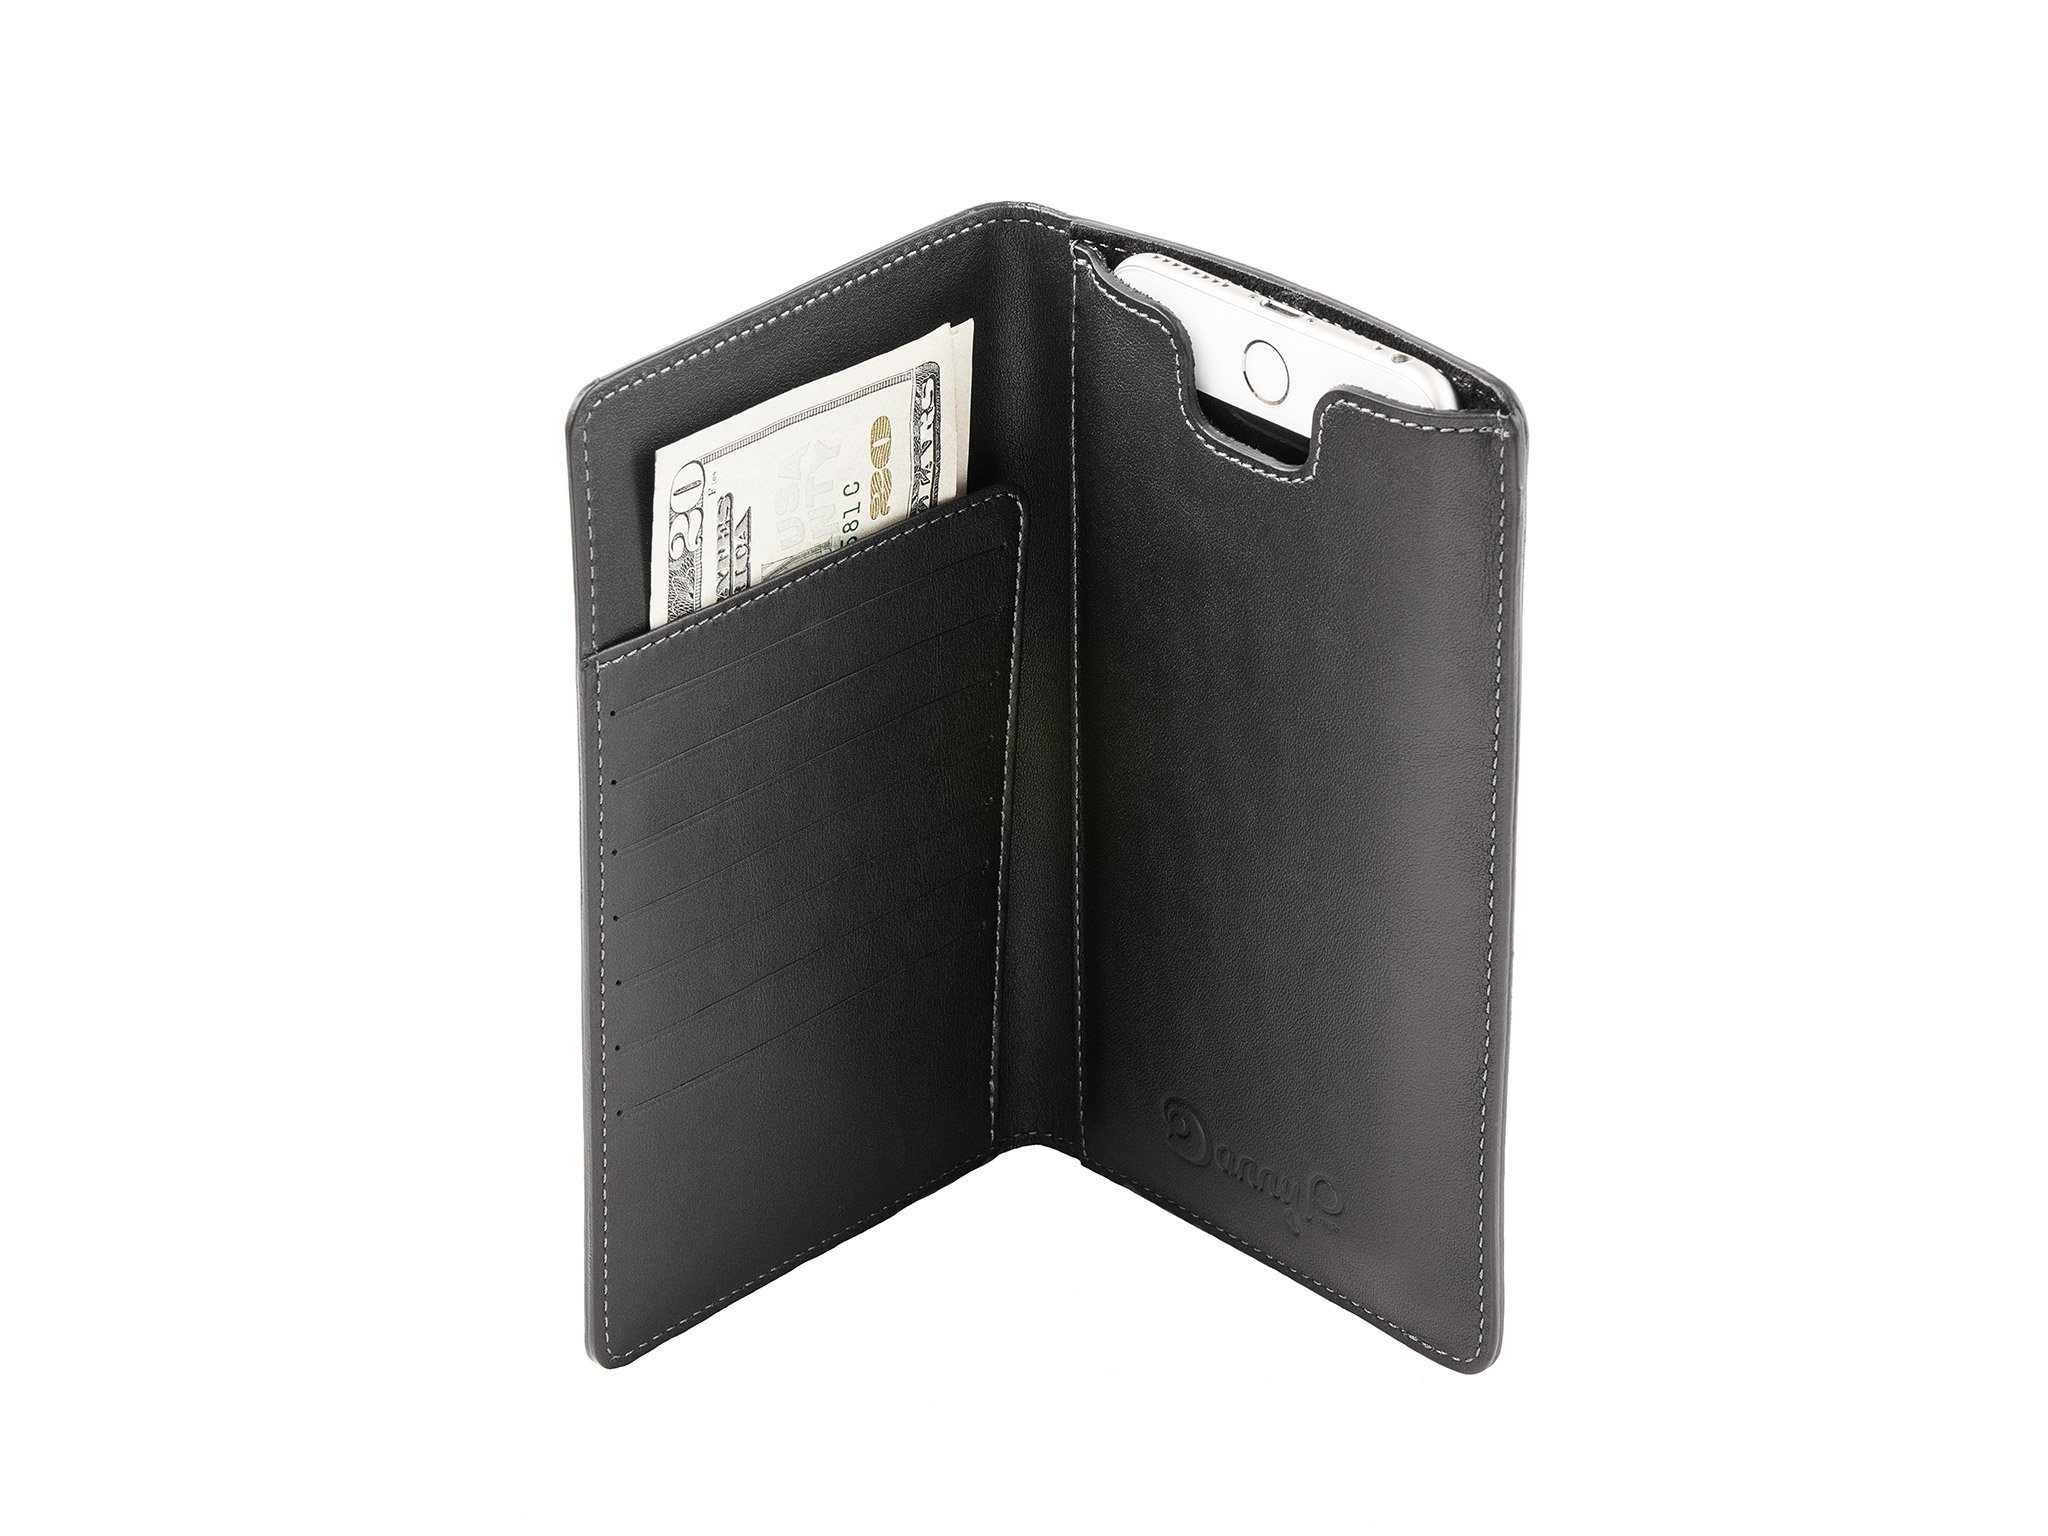 Leather wallet with iPhone 6/6s/7 Plus case by Danny P. (Black)